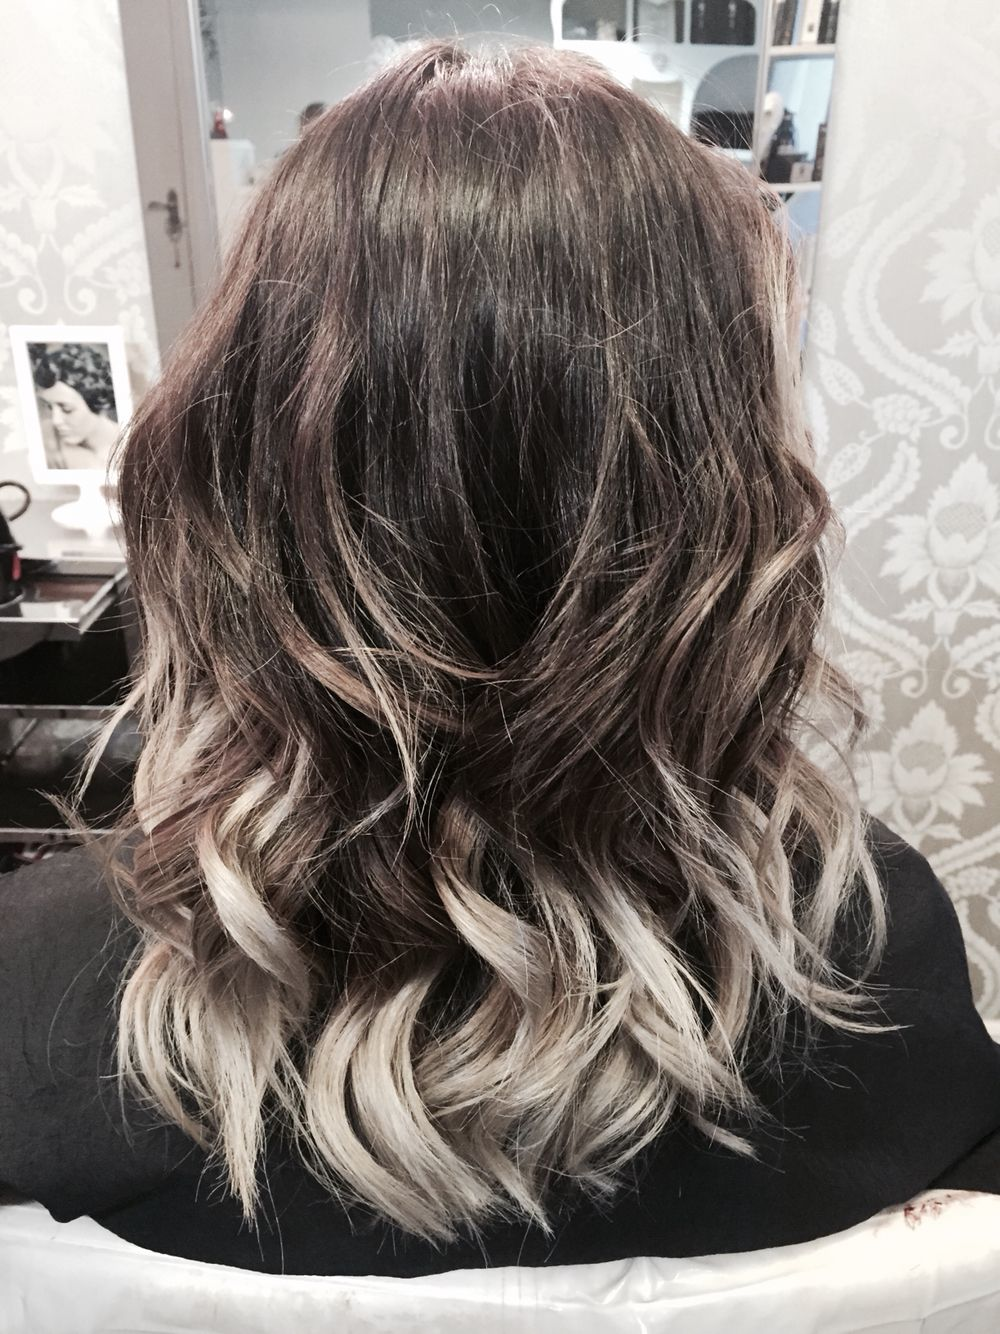 My Favourite Ombre So Far Ash Brown And Silver 3 Hair Styles Curly Hair Styles Naturally Brown And Silver Hair